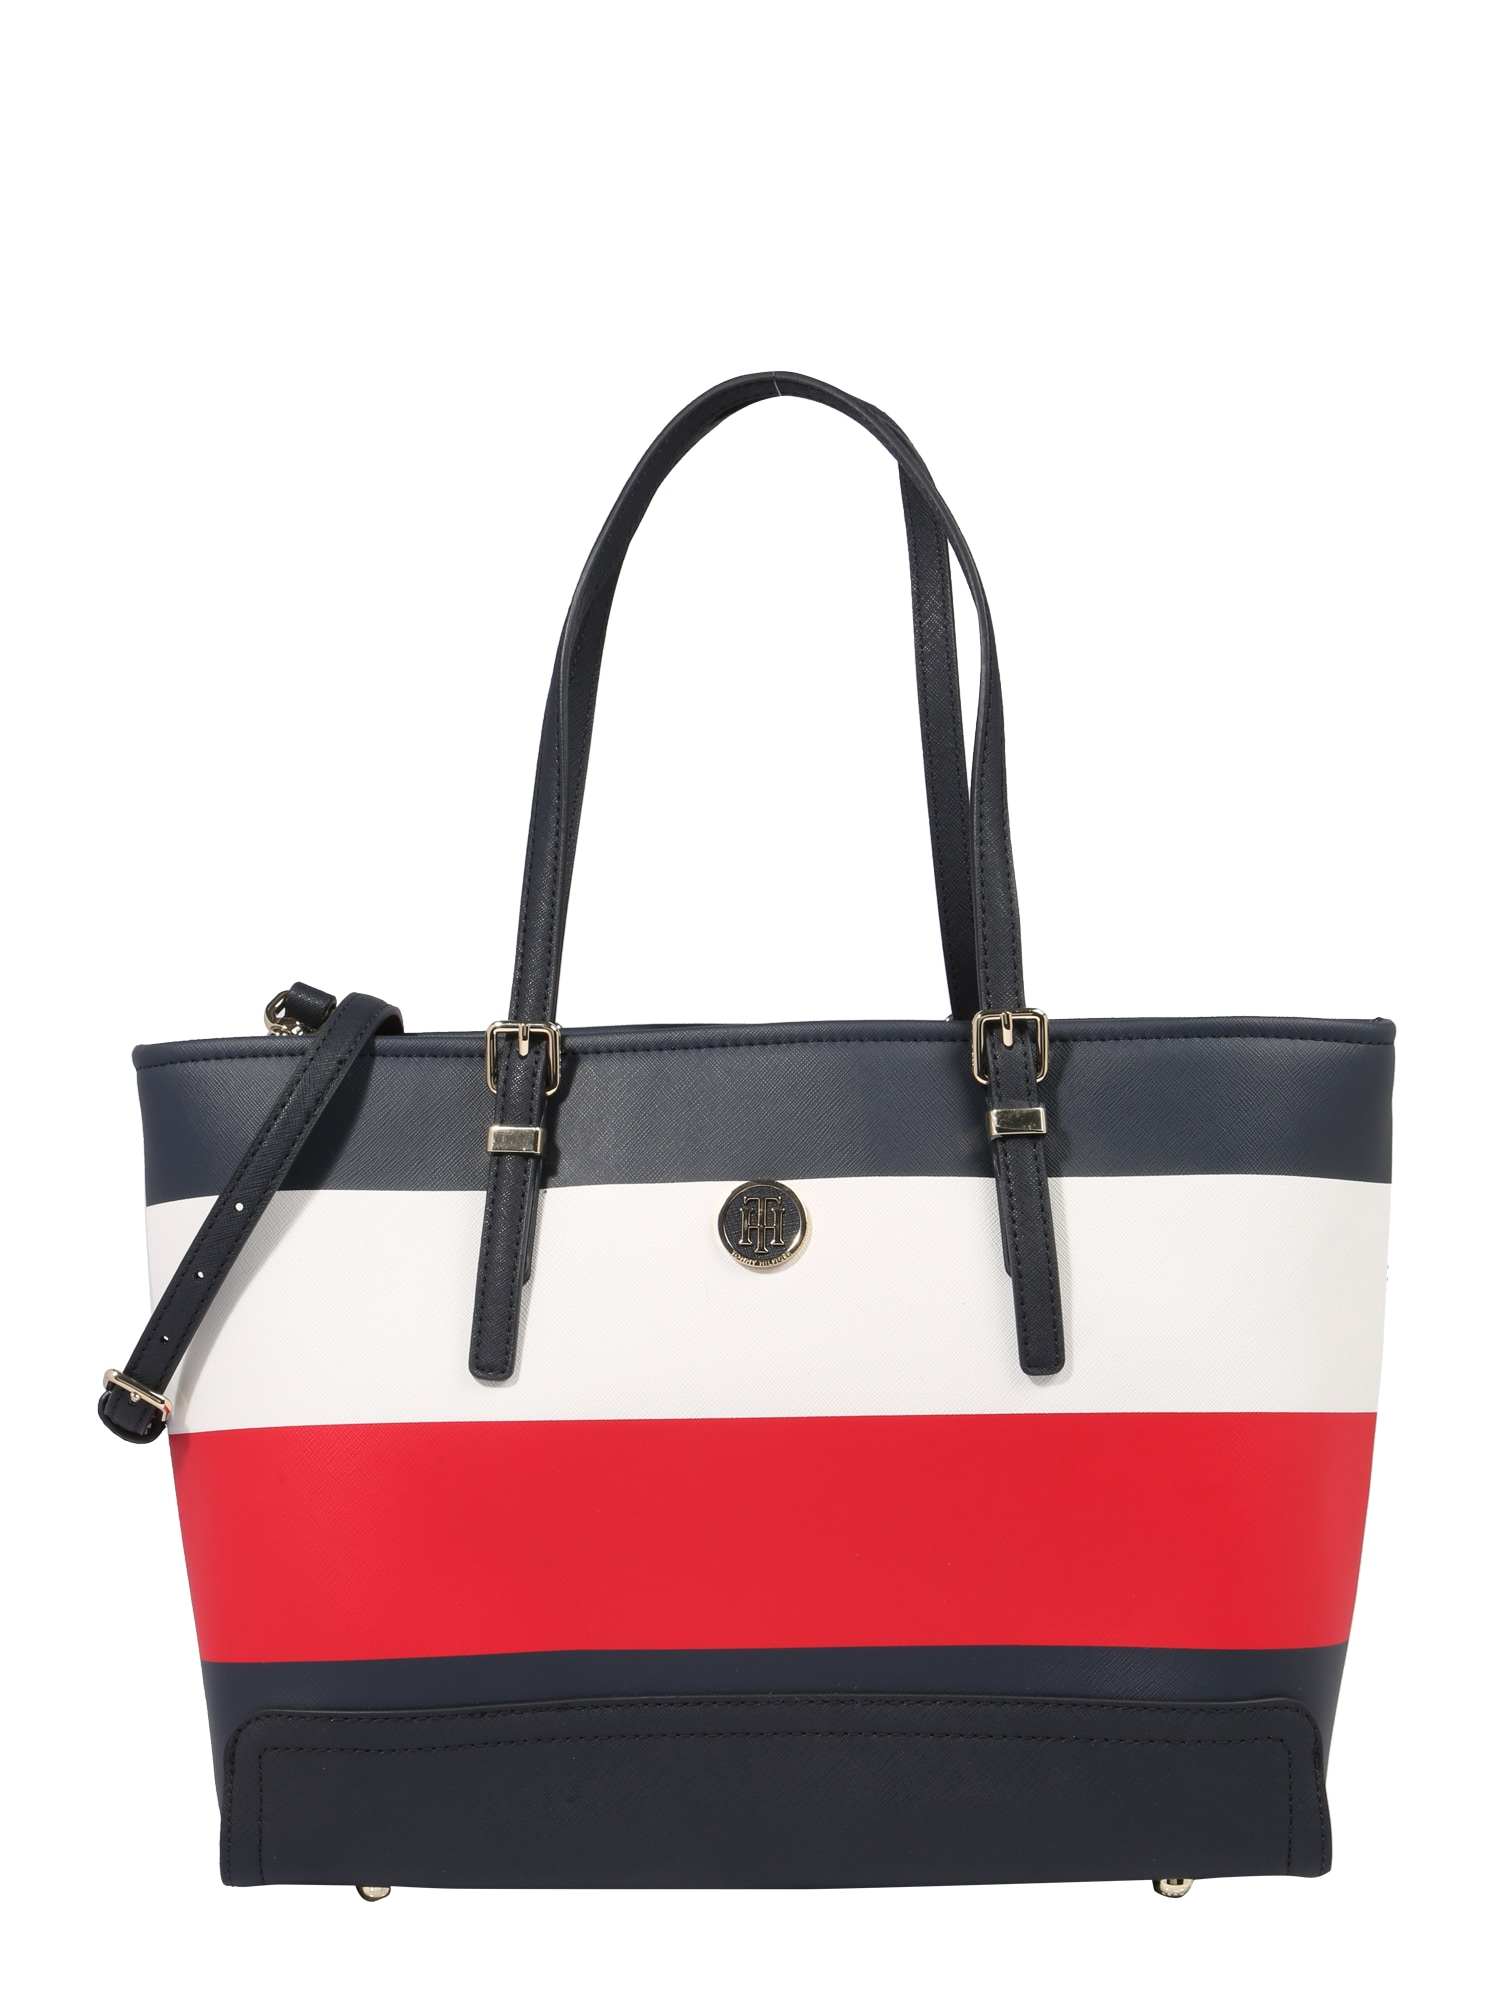 TOMMY HILFIGER, Dames Shopper 'HONEY MED', blauw / rood / wit